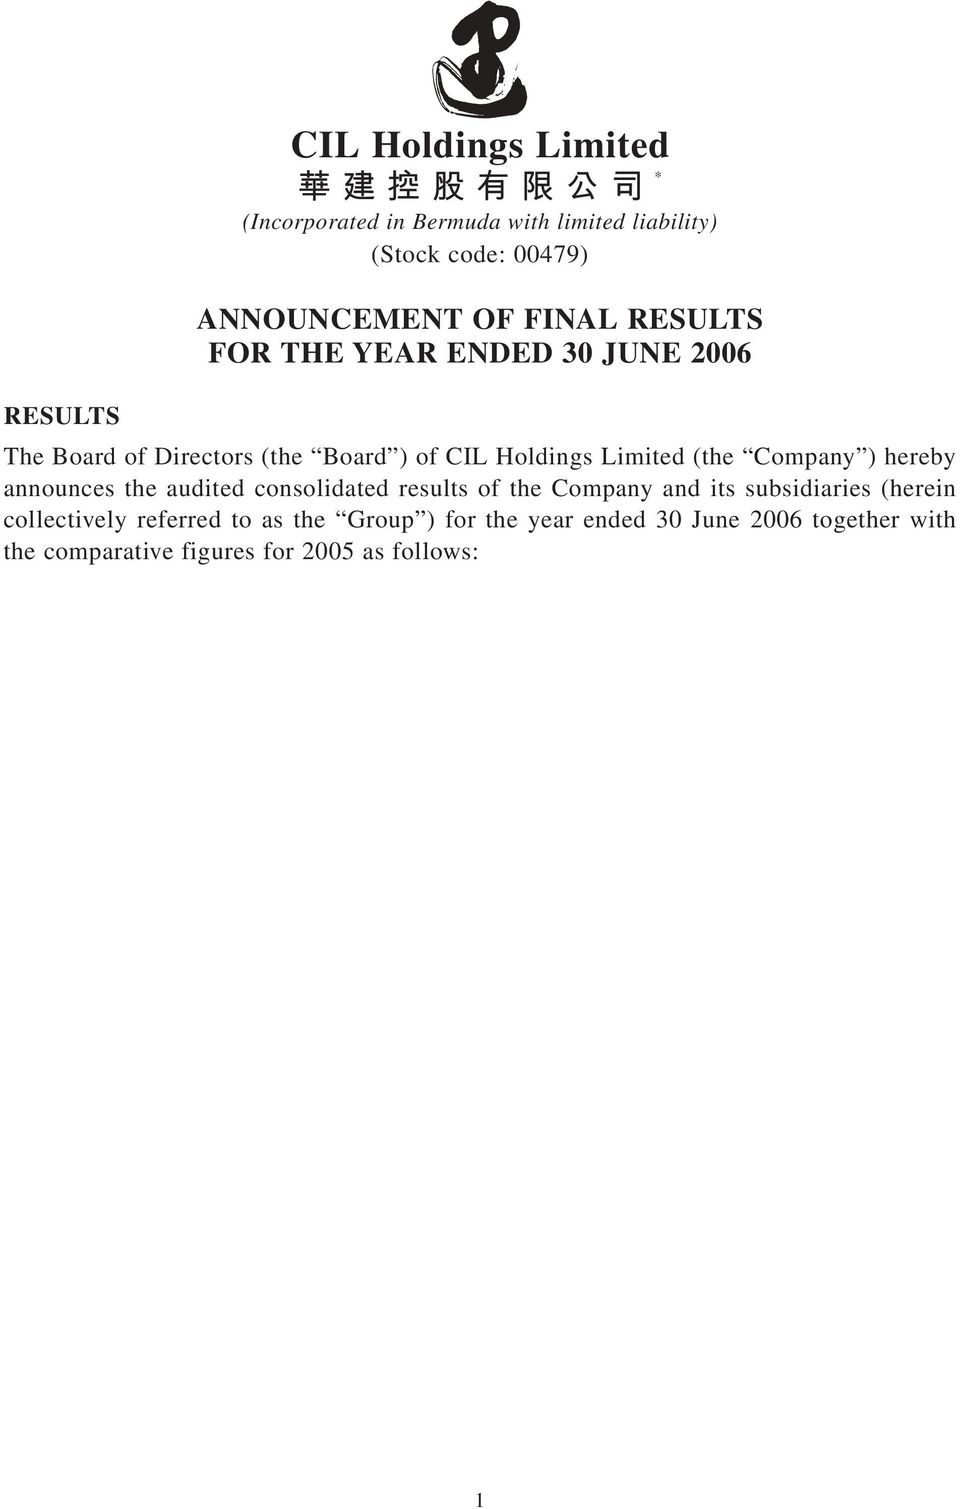 Company ) hereby announces the audited consolidated results of the Company and its subsidiaries (herein